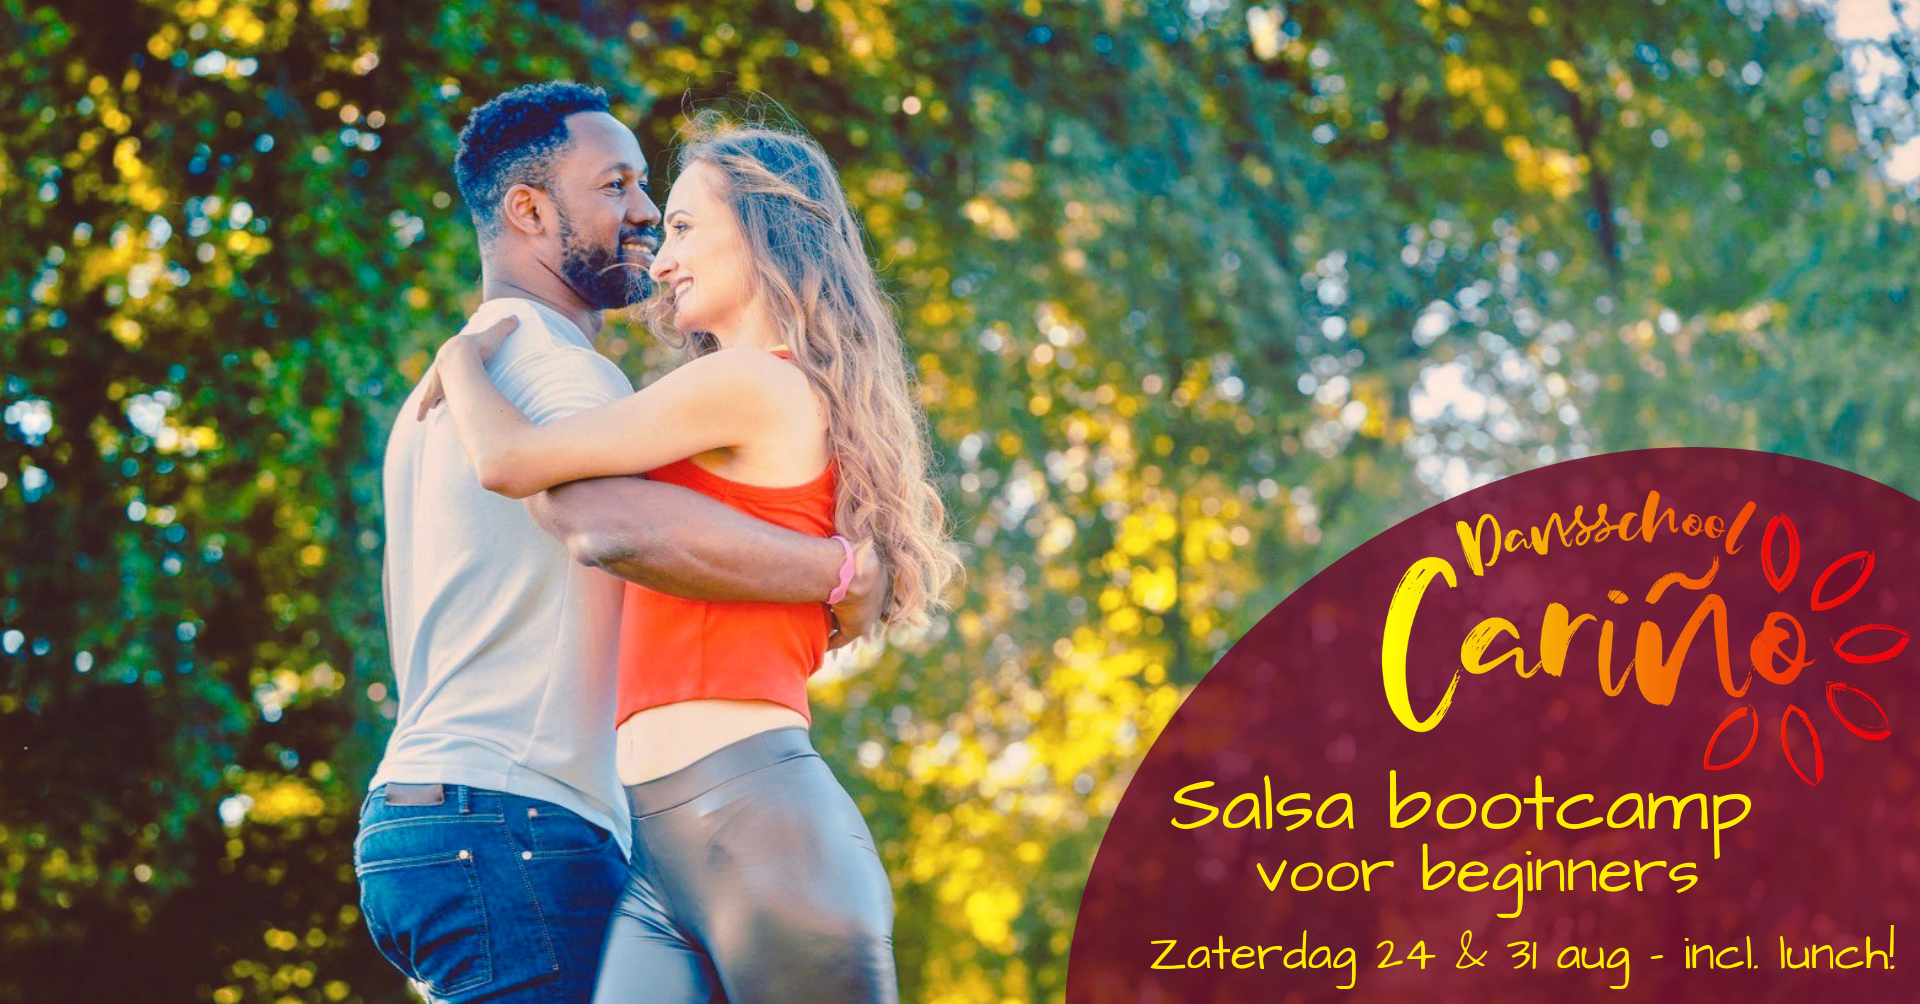 Dating salsa dansen